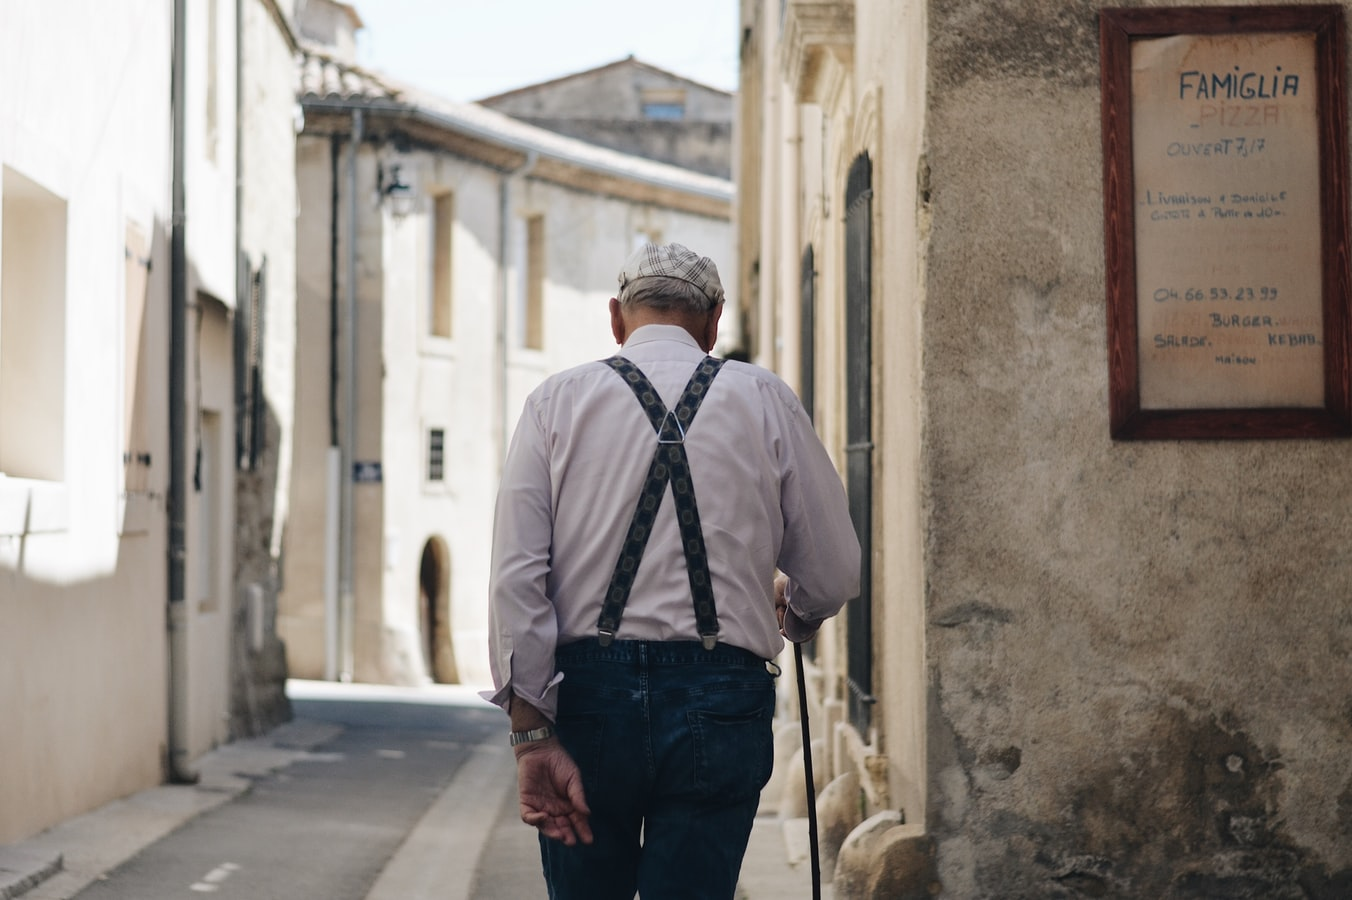 Should You Consider Putting a Loved One in a Nursing Home?